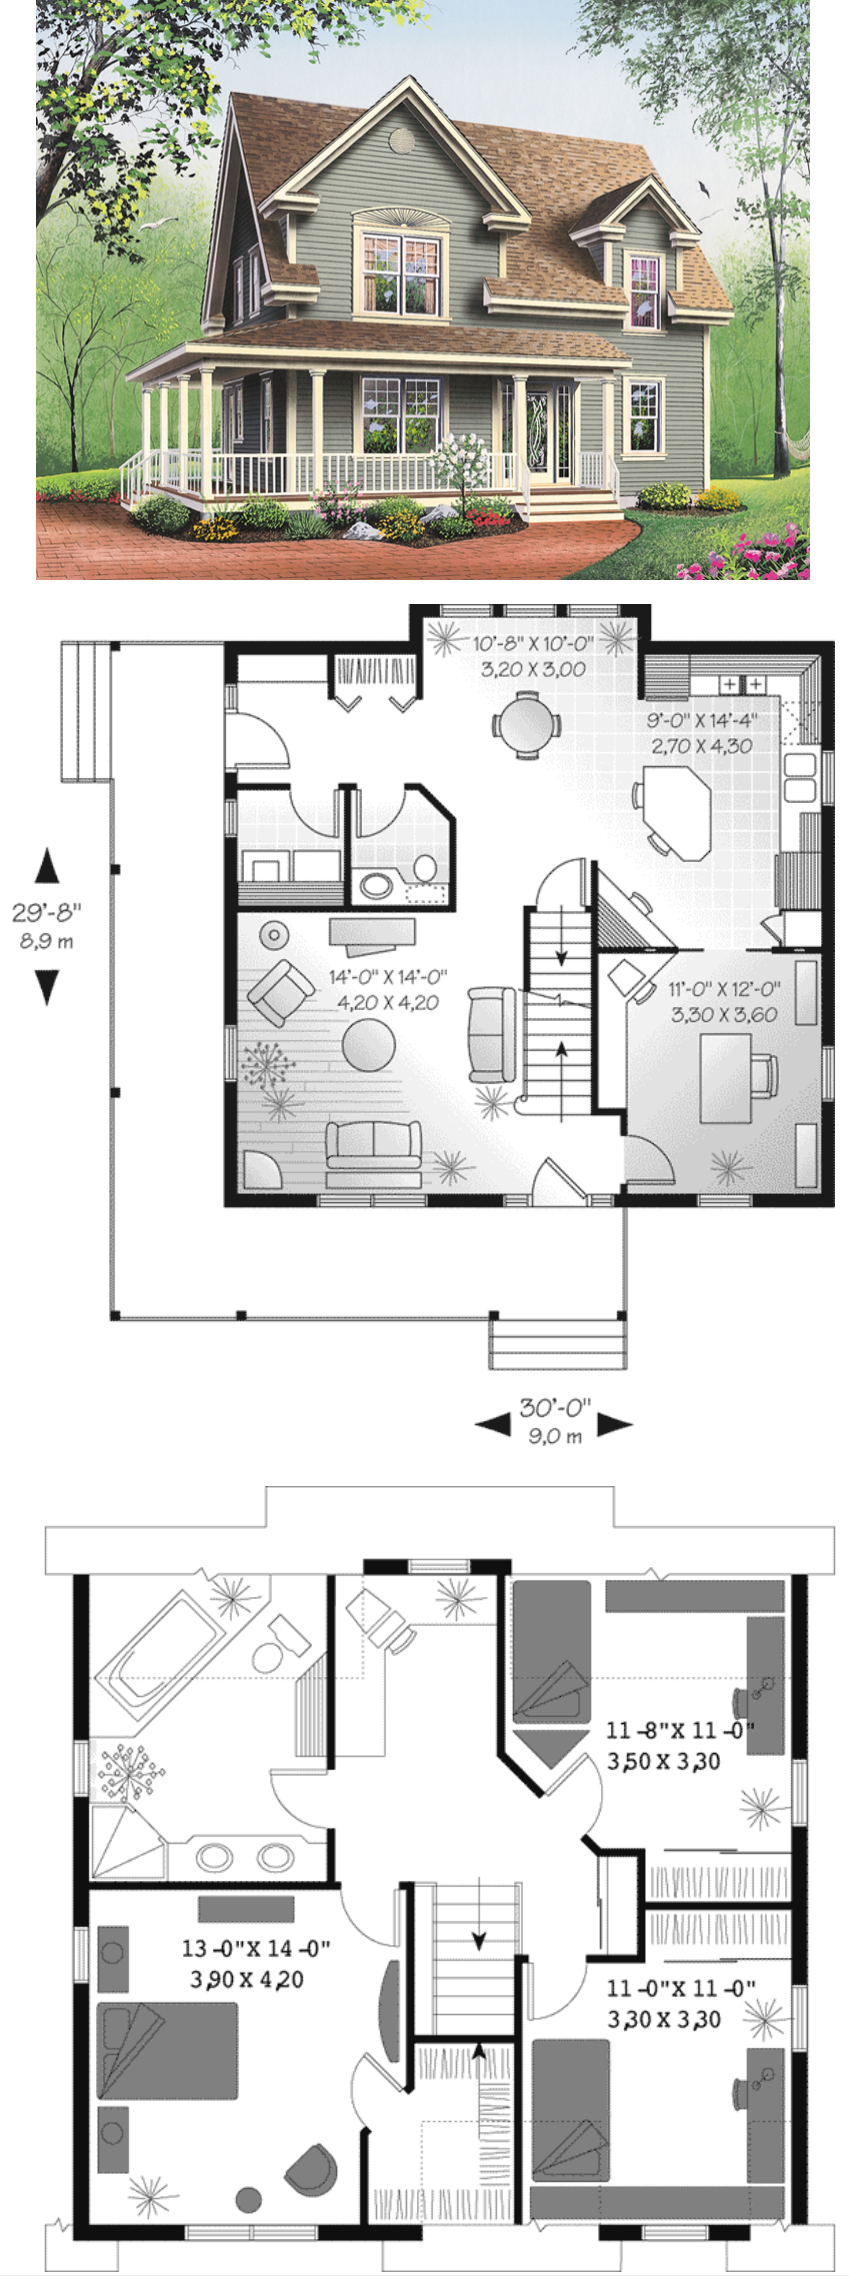 perfect smaller house small farmhouse plans on small modern home plans design for financial savings id=62109